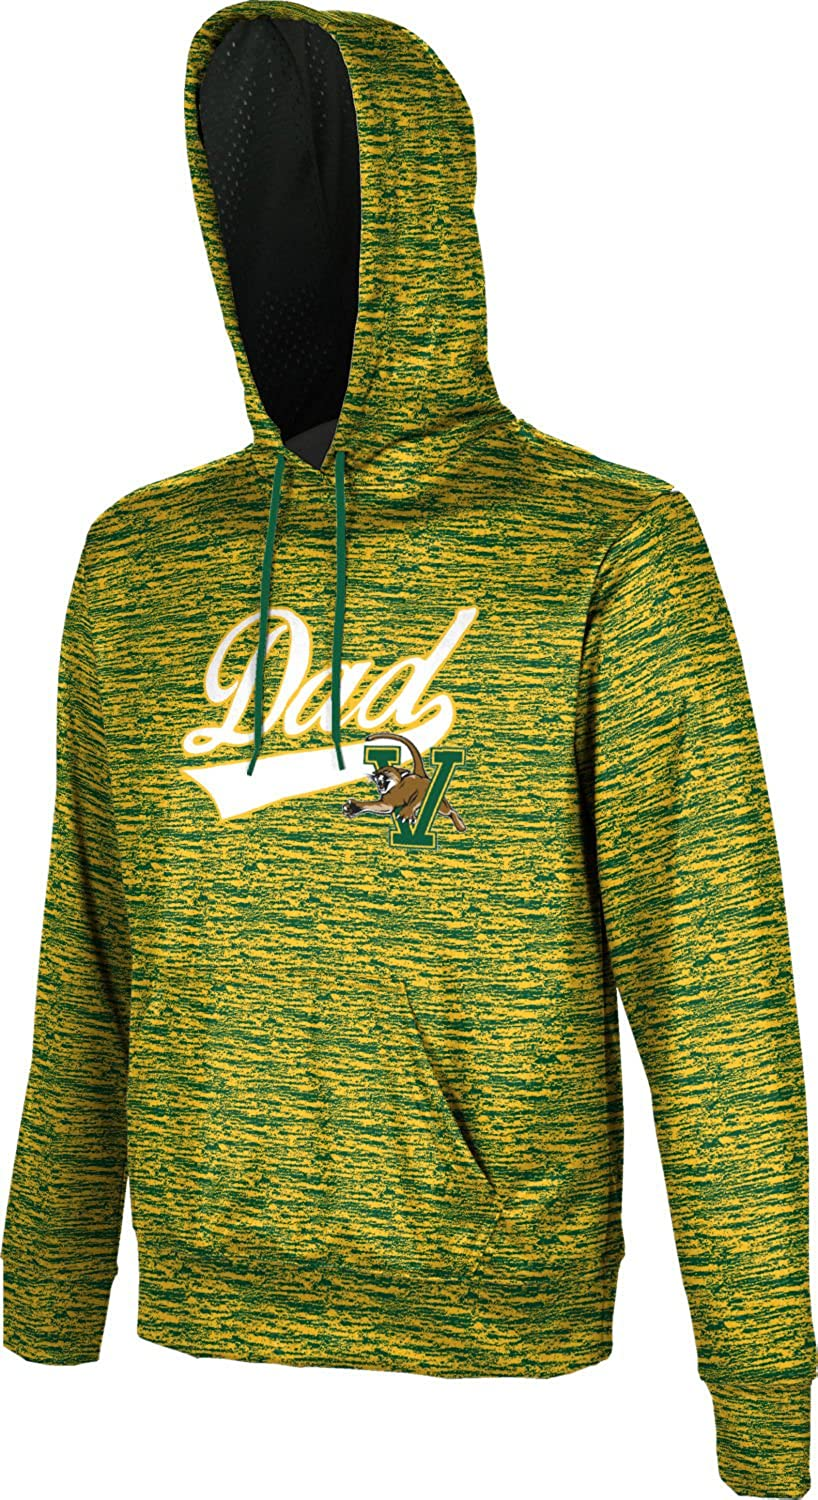 University of Vermont Fathers Day Mens Pullover Hoodie School Spirit Sweatshirt Brushed